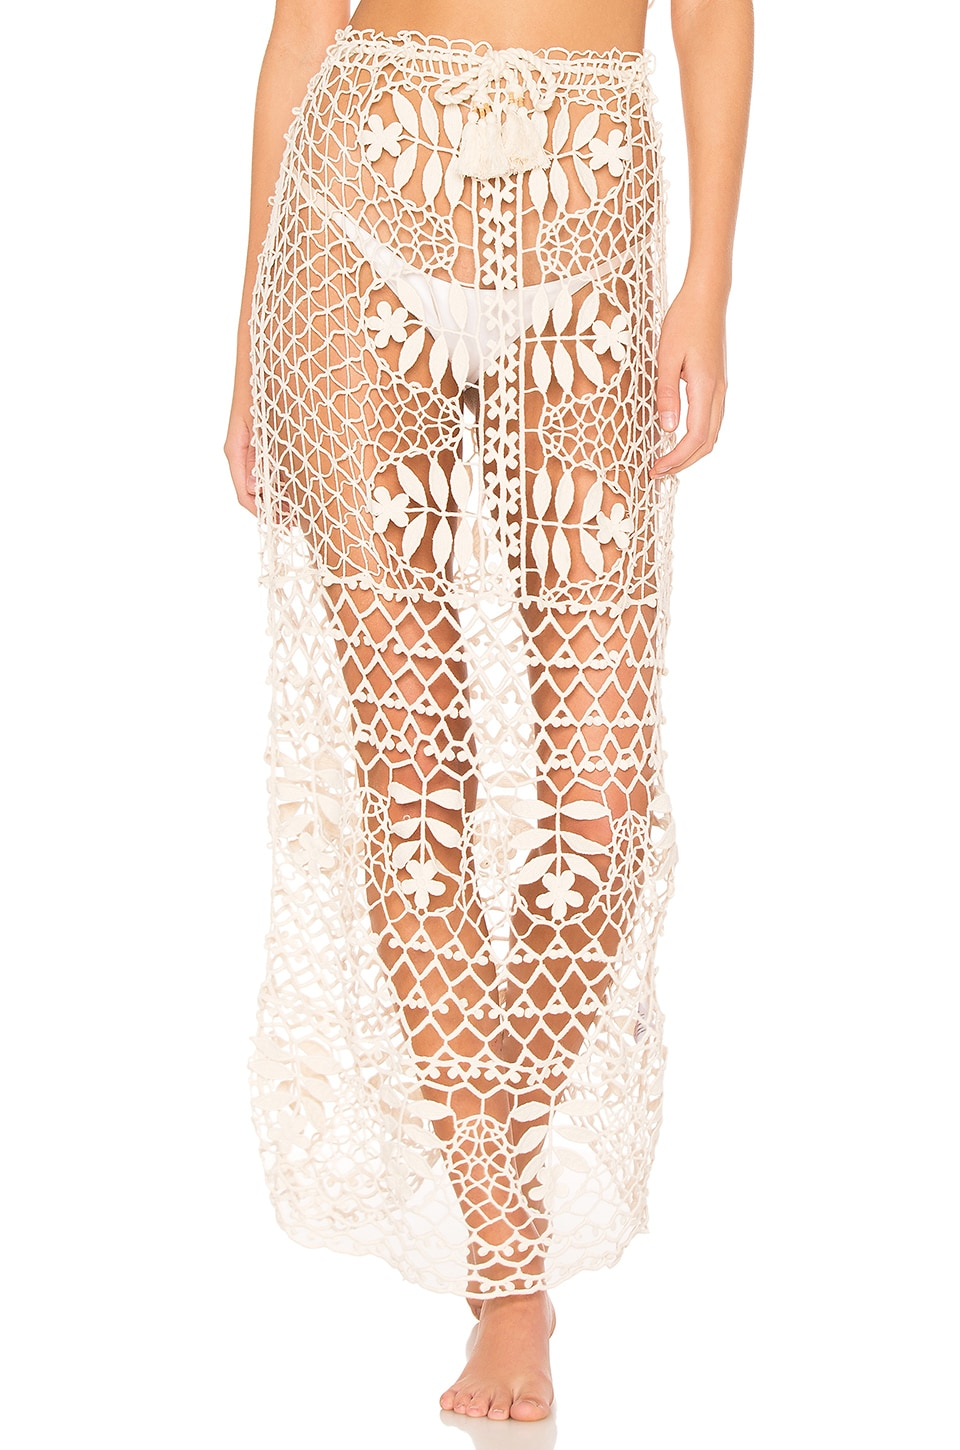 Melrose Crochet Skirt